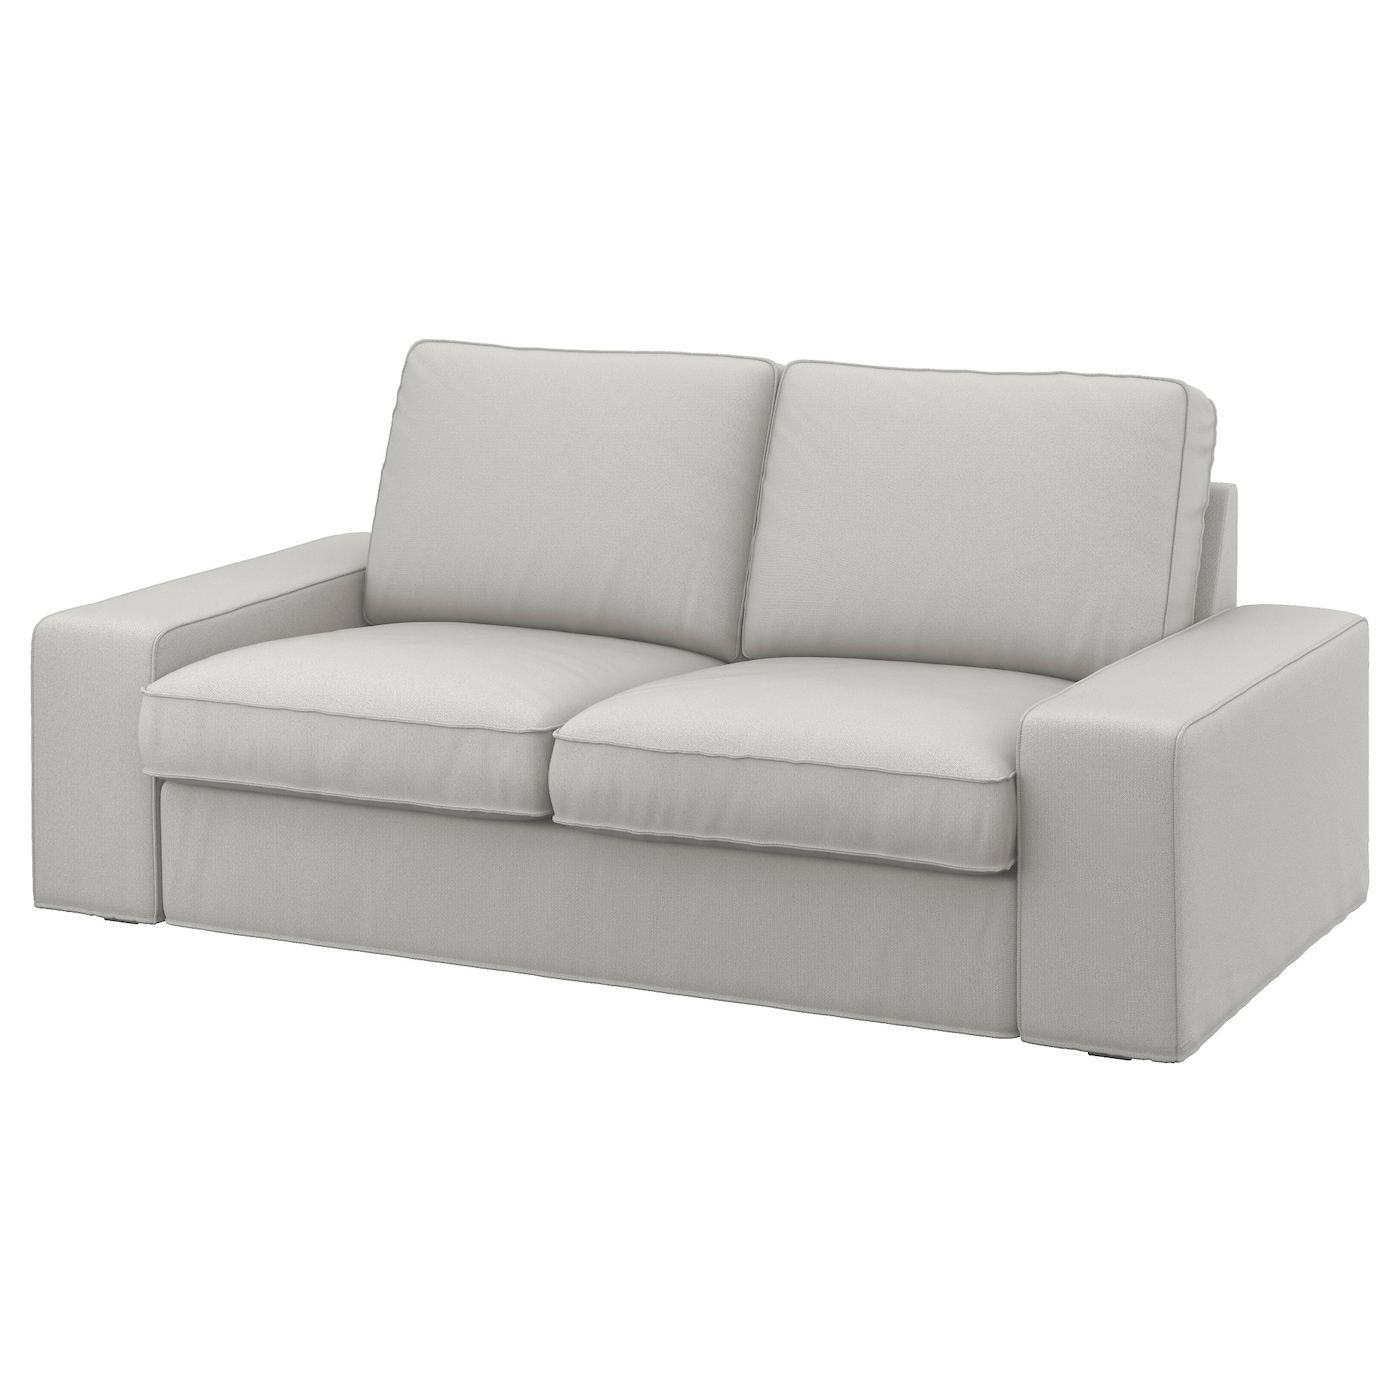 IKEA KIVIK two-seat sofa The cover is easy to keep clean as it is removable and can be dry cleaned.